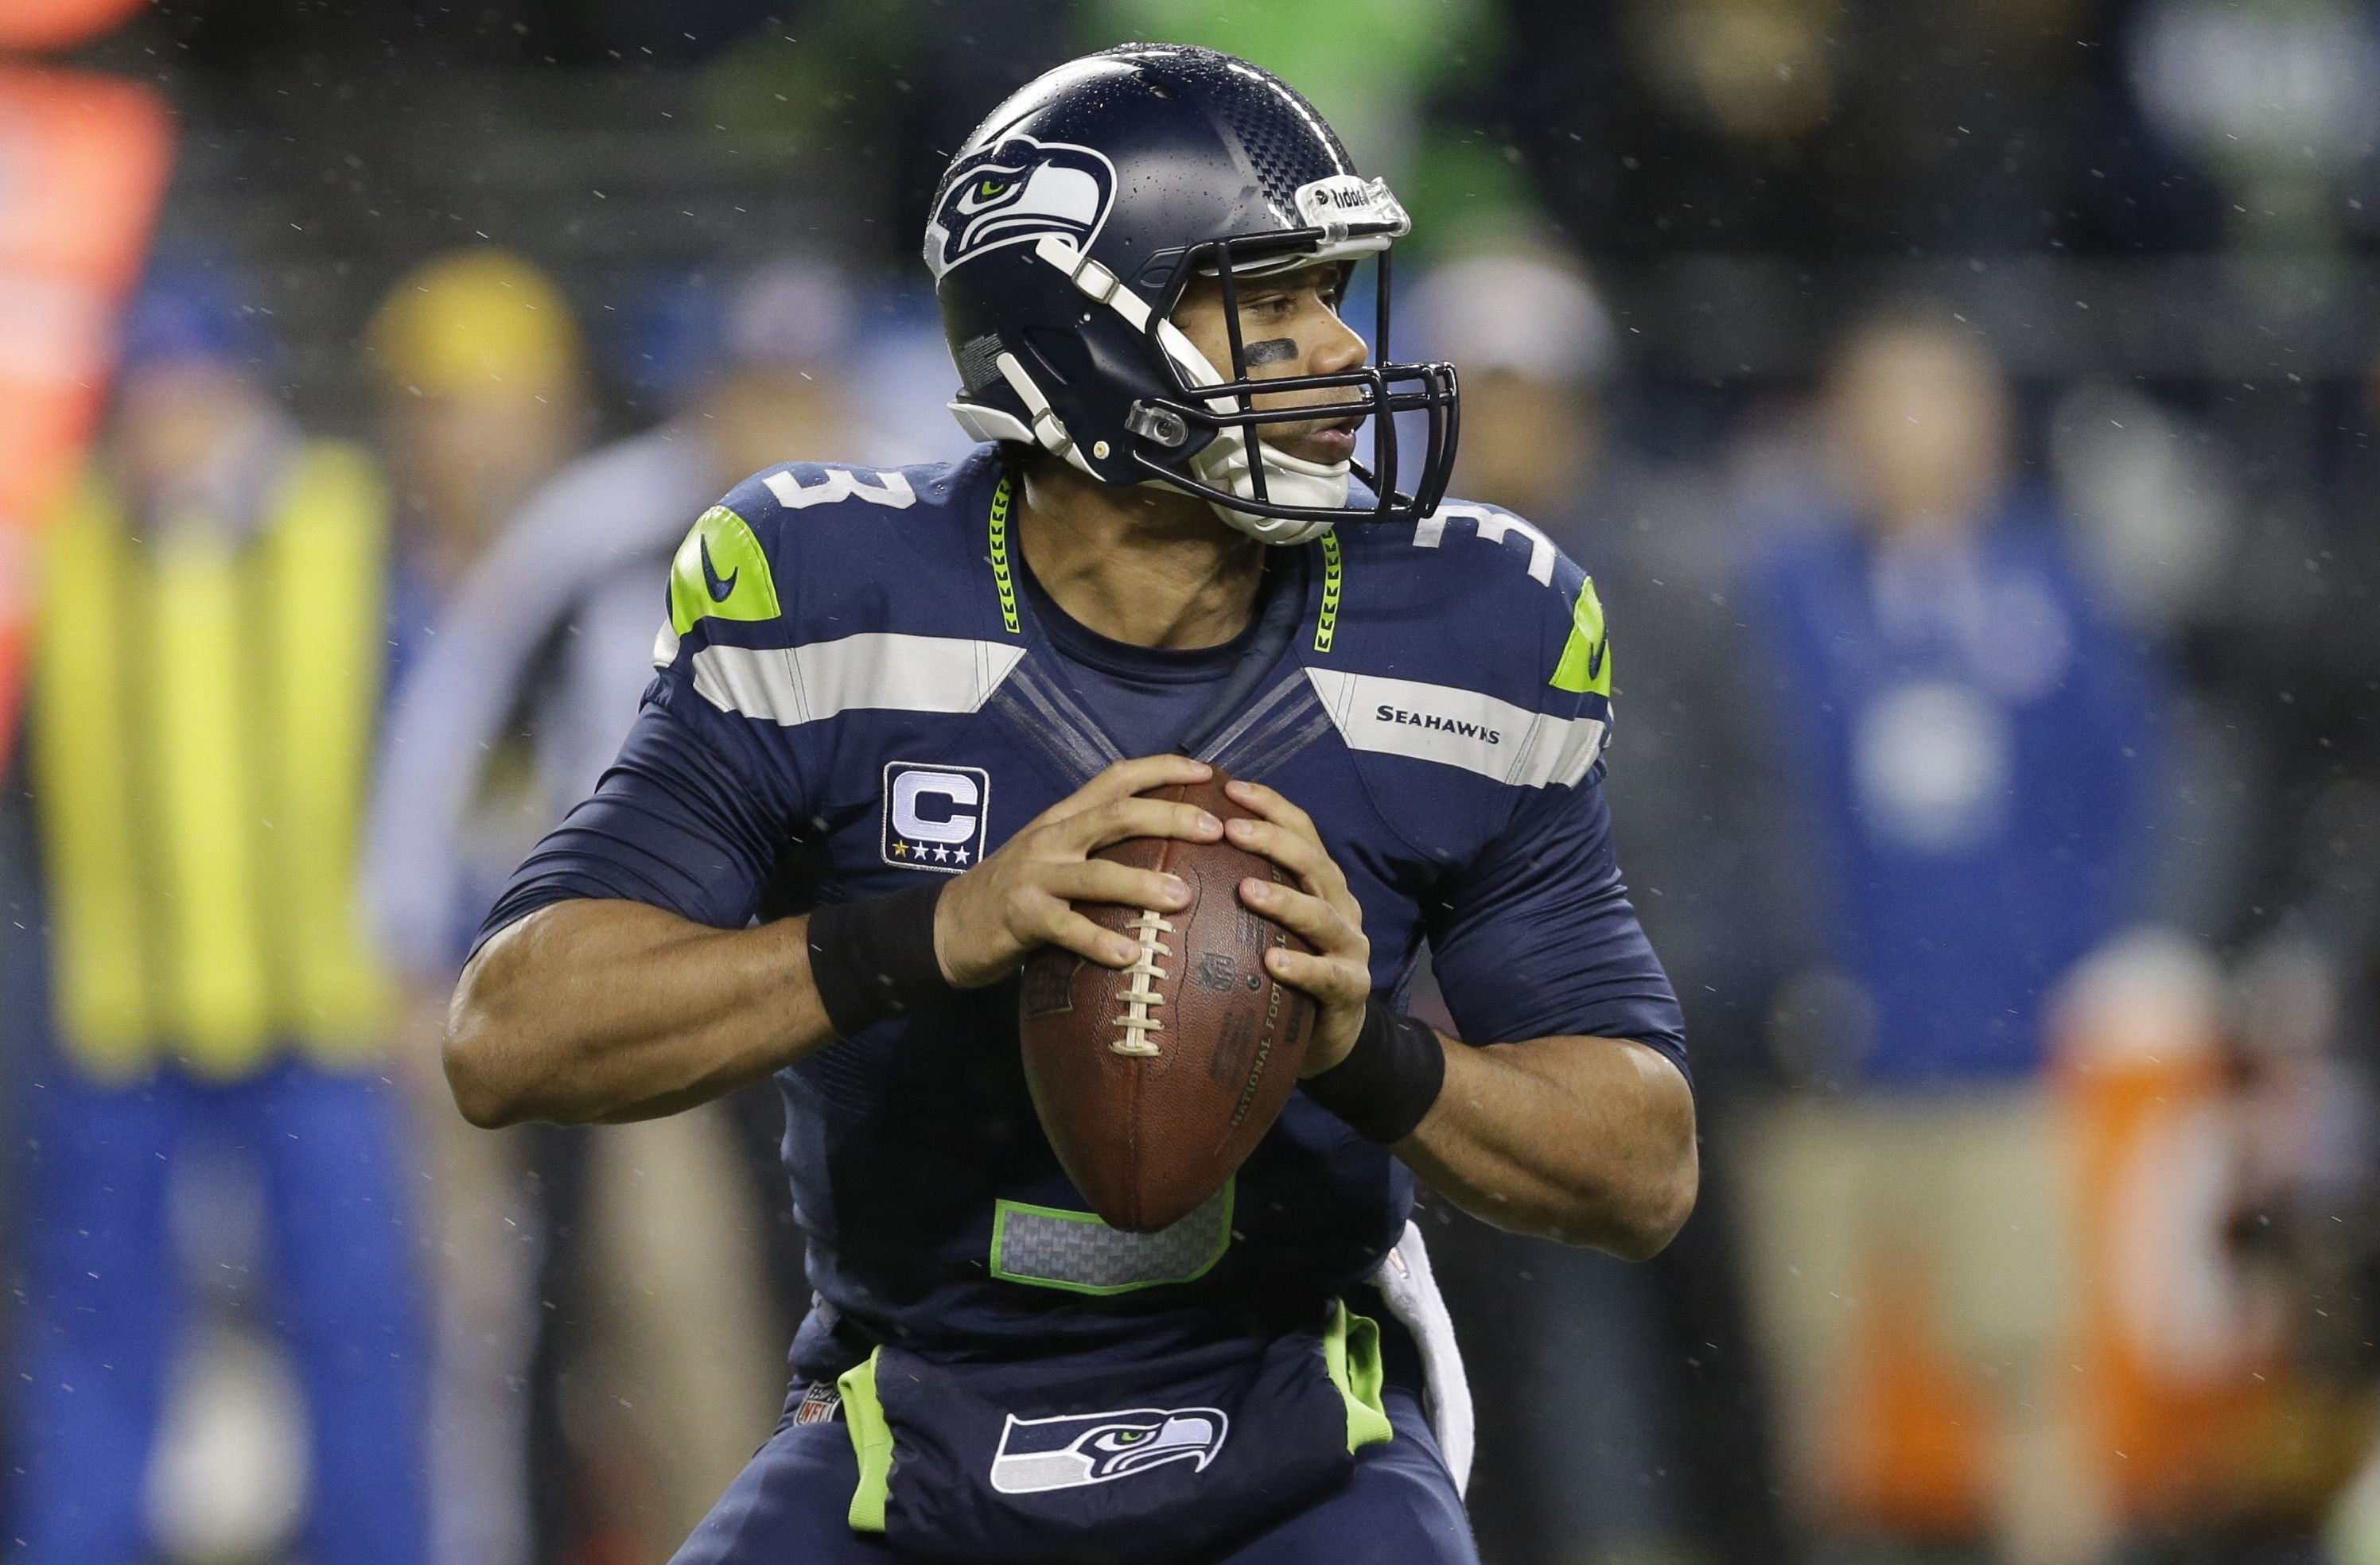 Get the latest Seattle Seahawks news scores stats standings rumors and more from ESPN